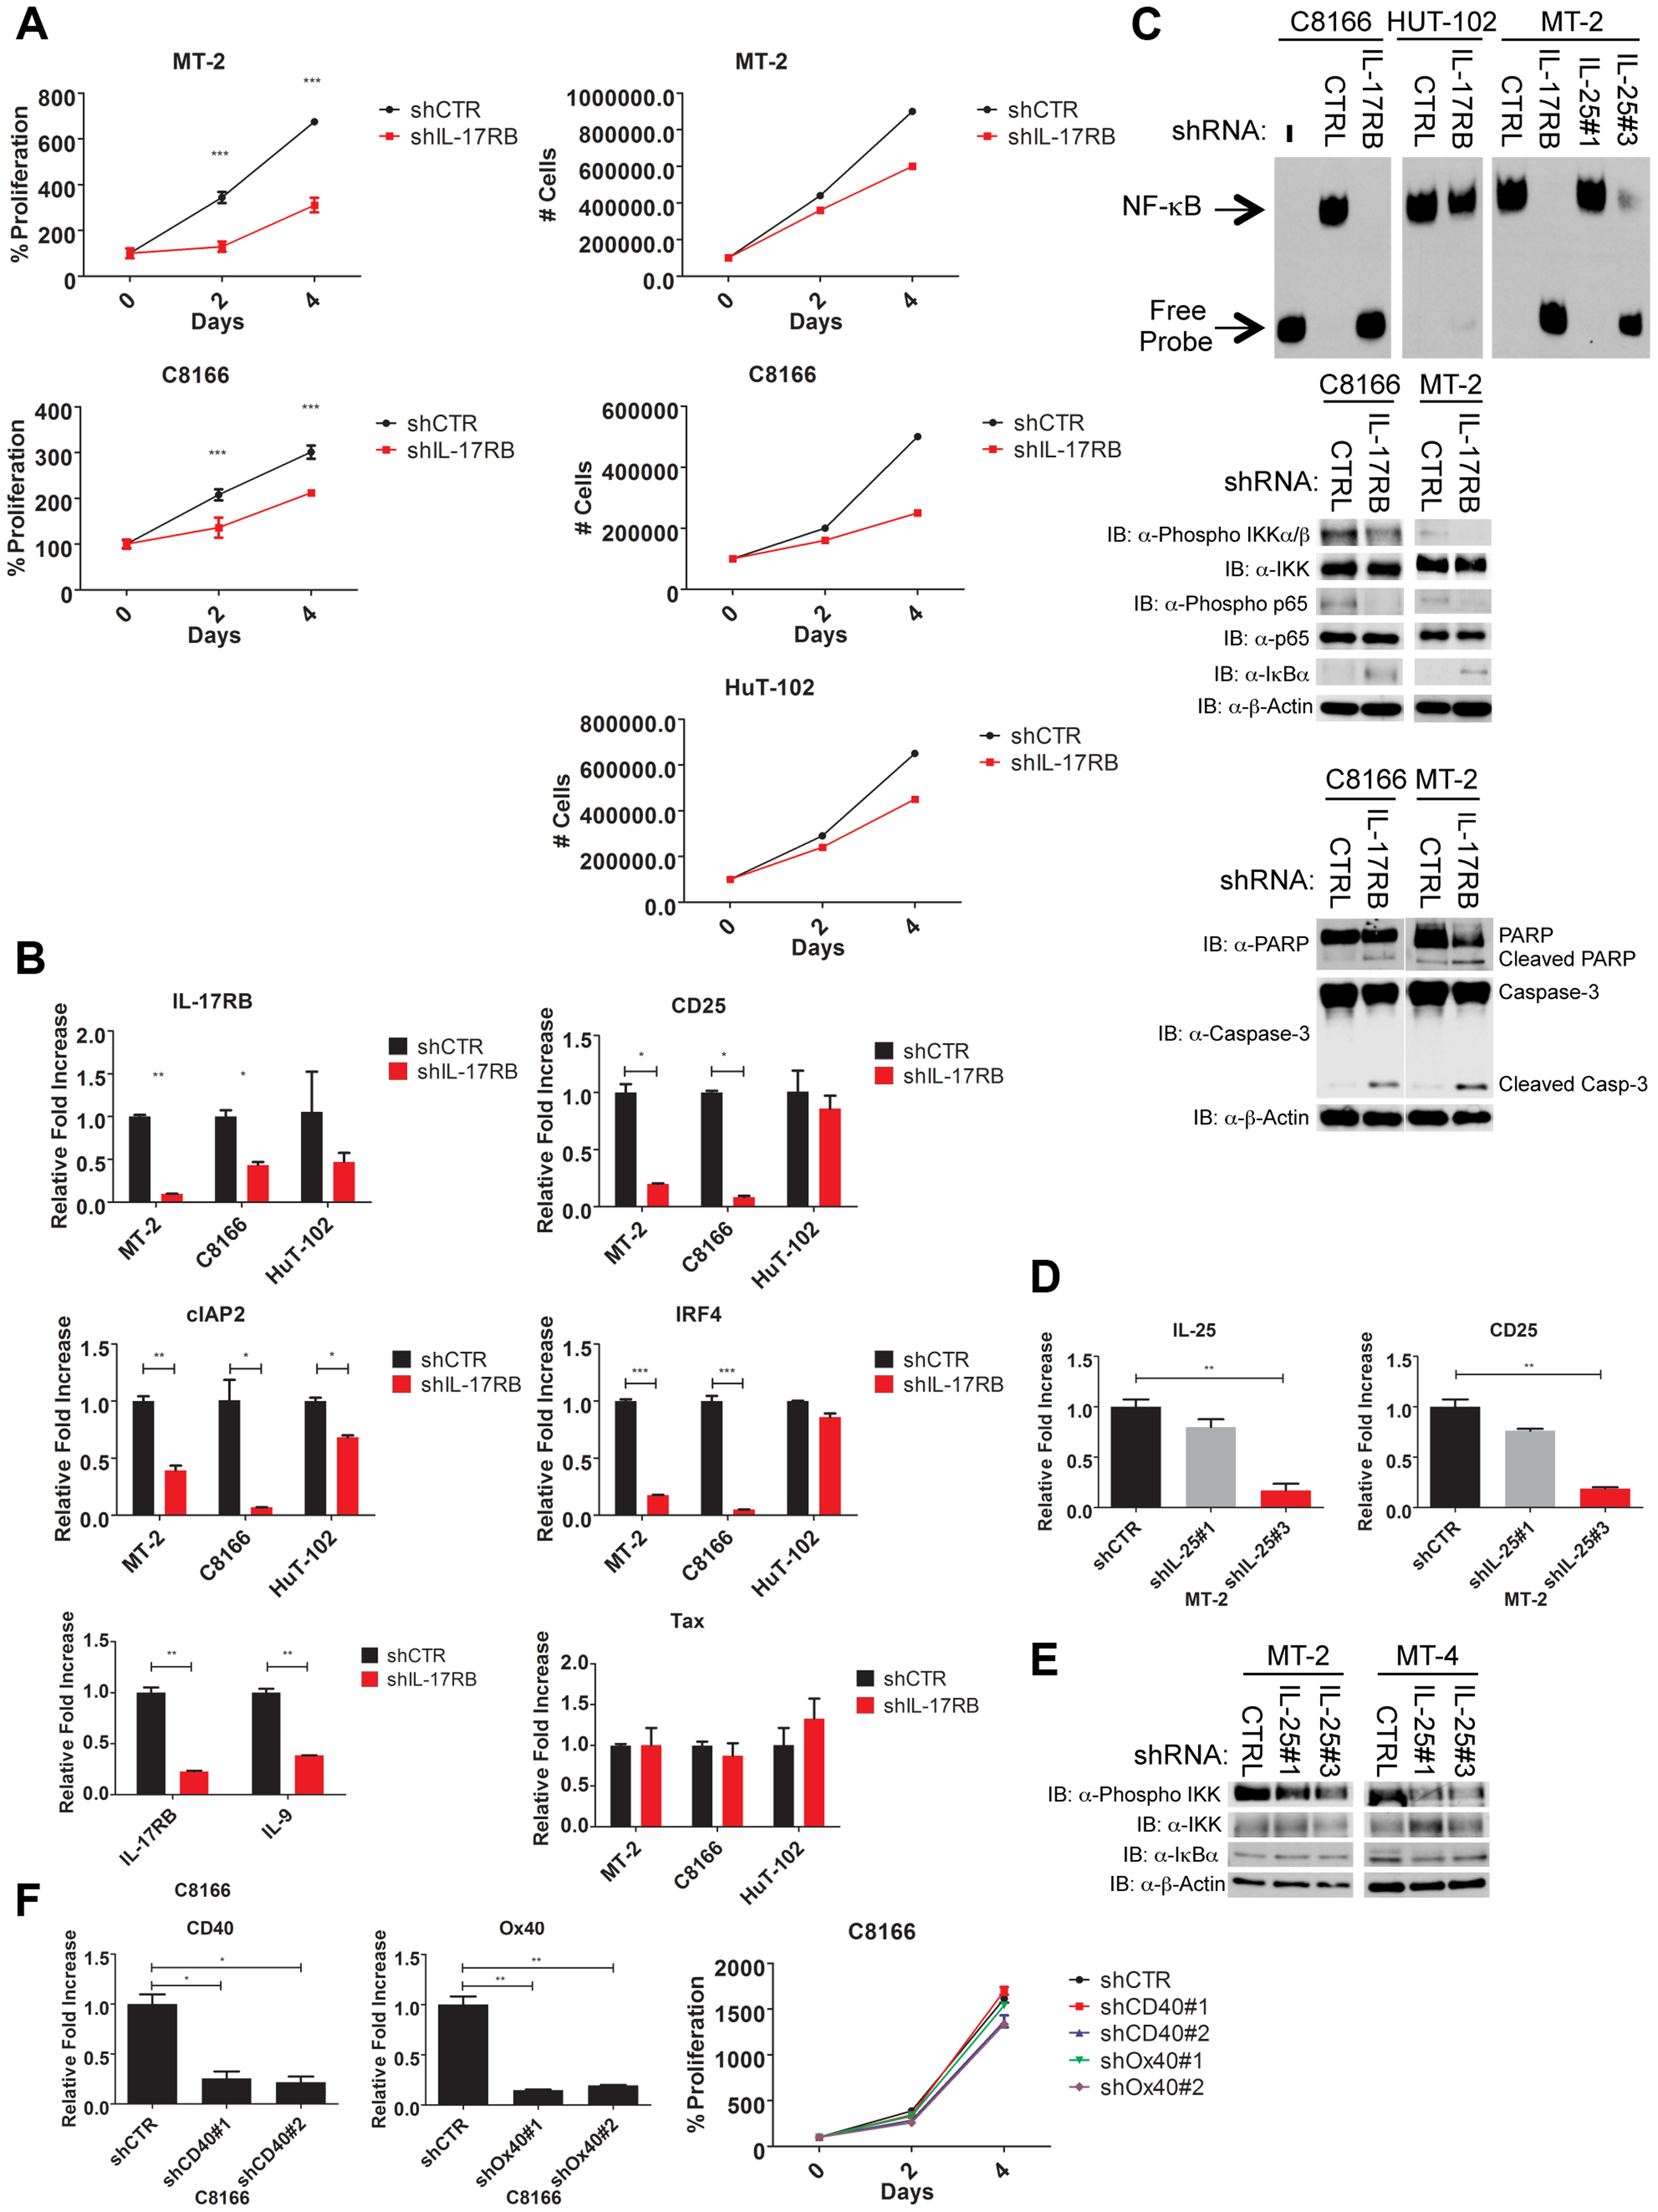 IL-17RB and IL-25 are essential for NF-κB activation and survival of HTLV-1 transformed cells.